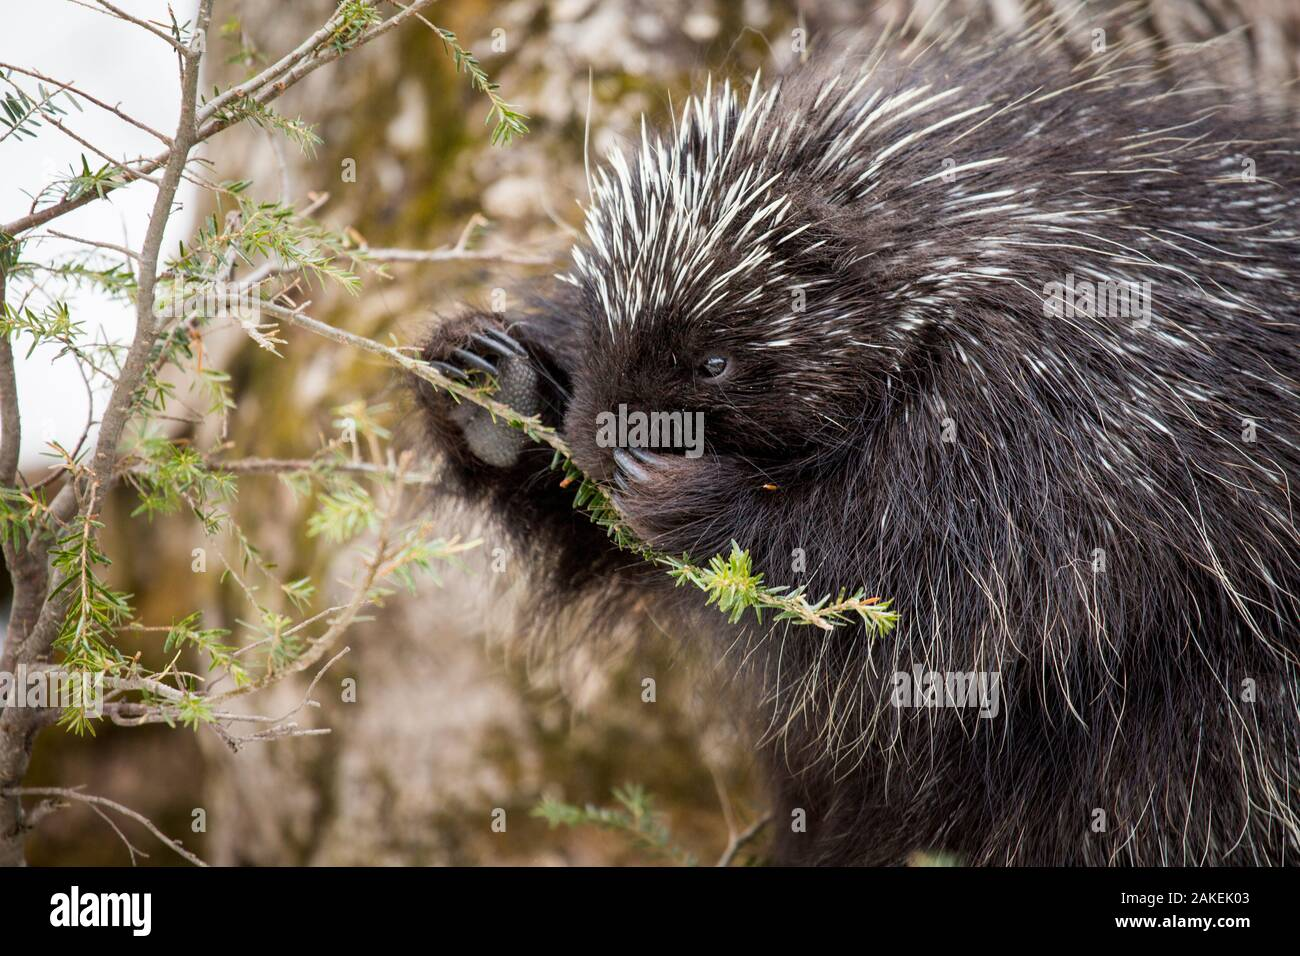 North American porcupine (Erethizon dorsatum), feeding on a young spruce tree. Vermont, USA. (Habituated rescued individual returned to the wild) Stock Photo